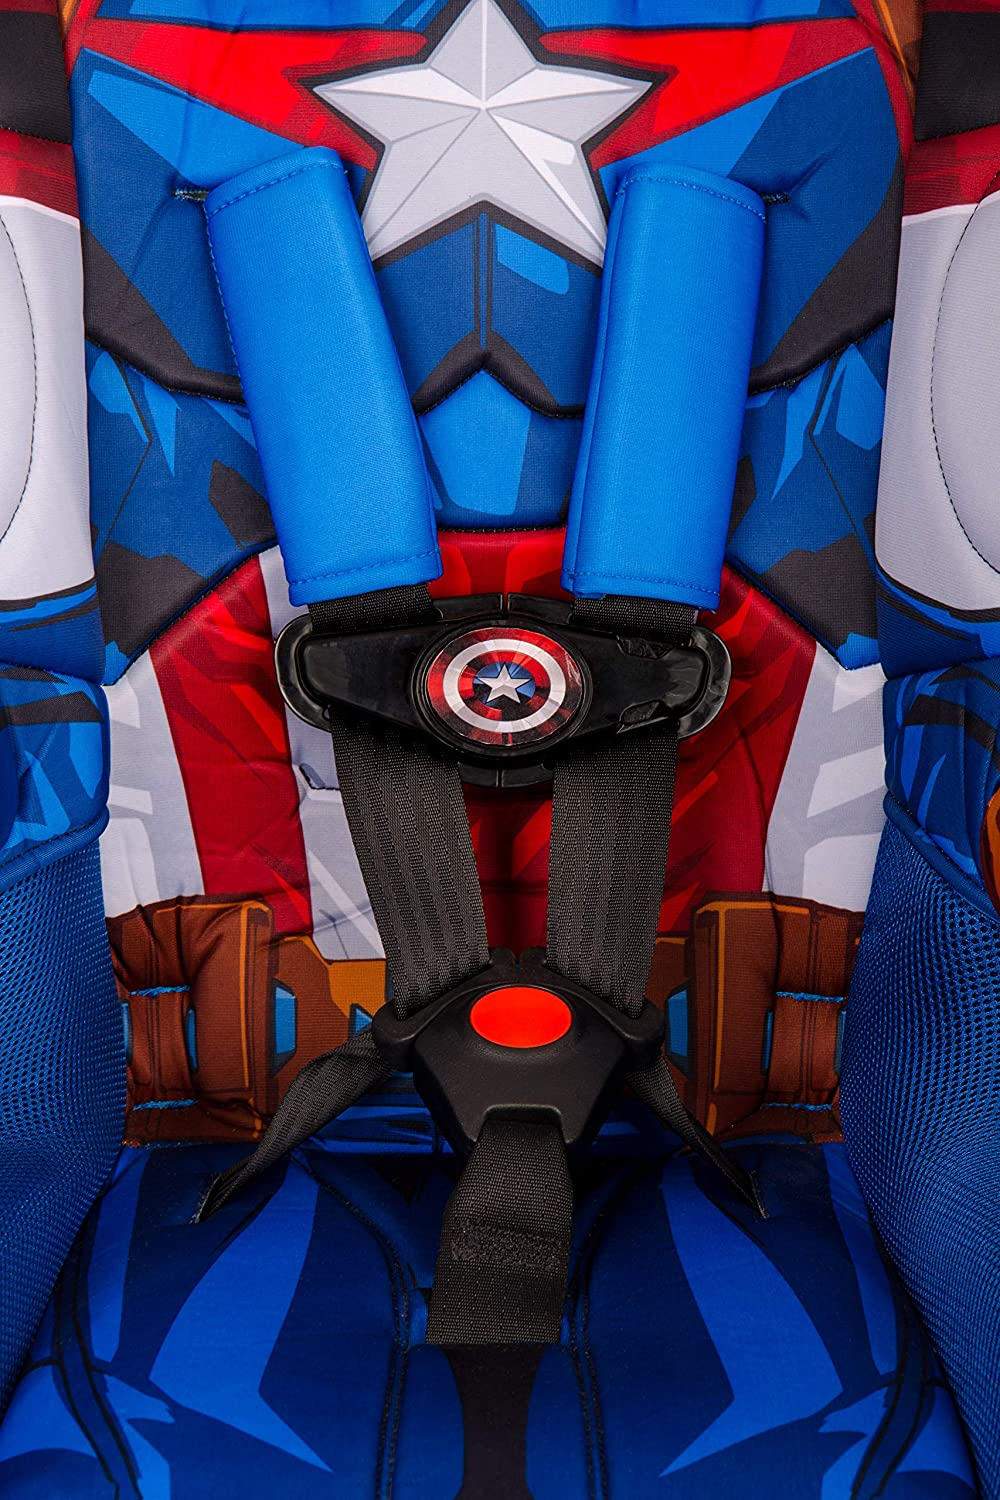 KidsEmbrace 2-in-1 Harness Booster Car Seat Marvel Black Panther